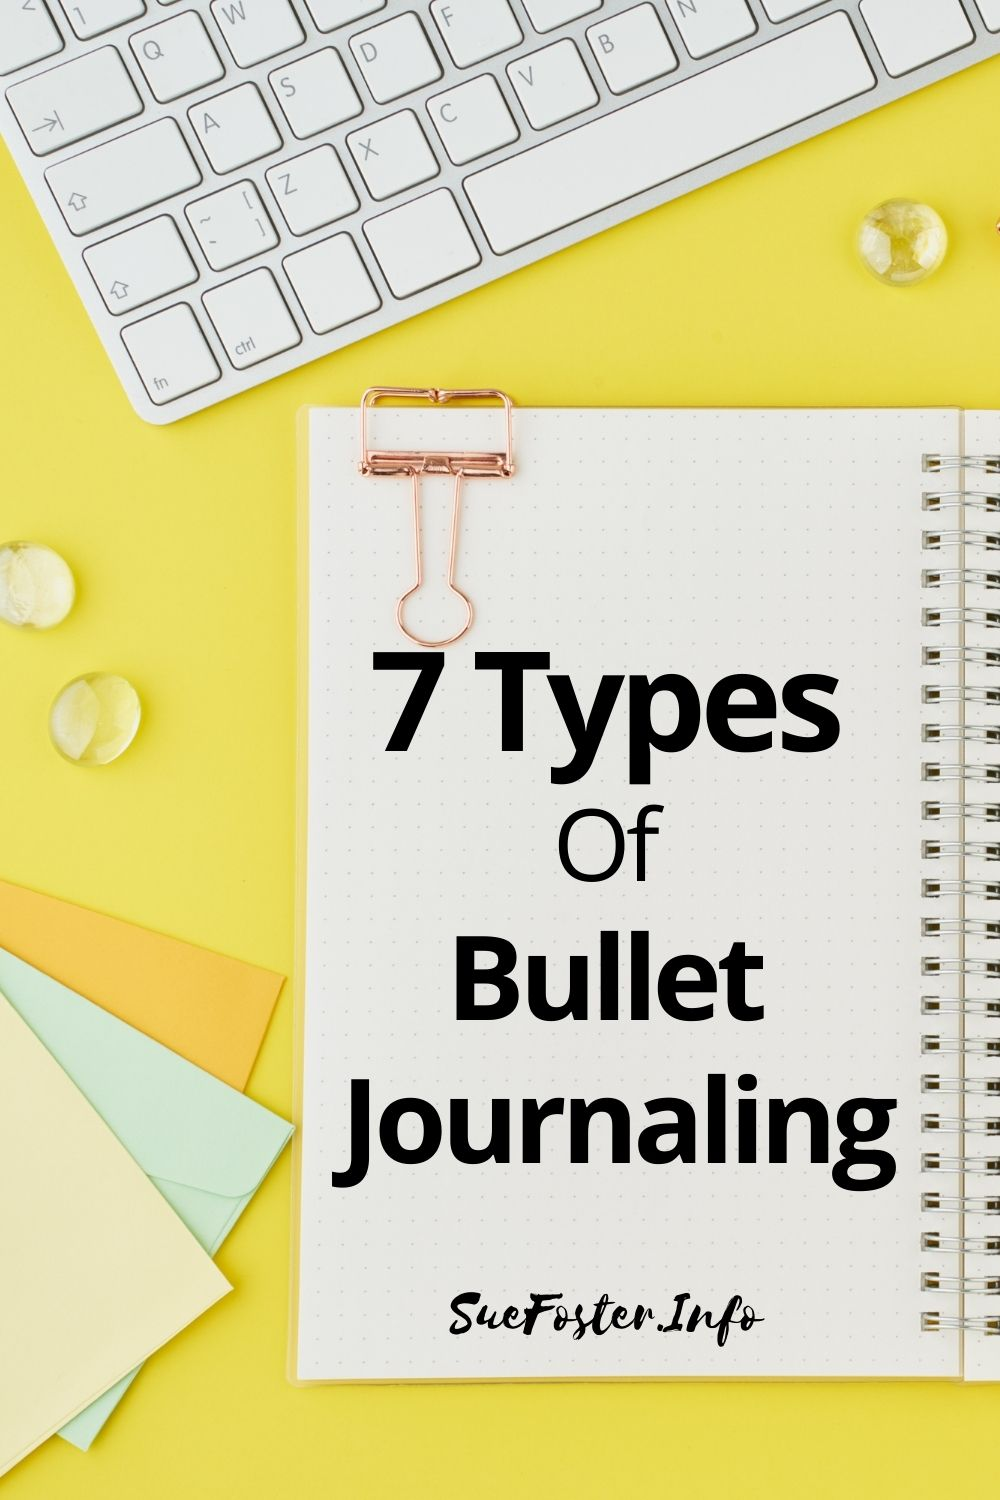 7 types of bullet journaling ideas for you.